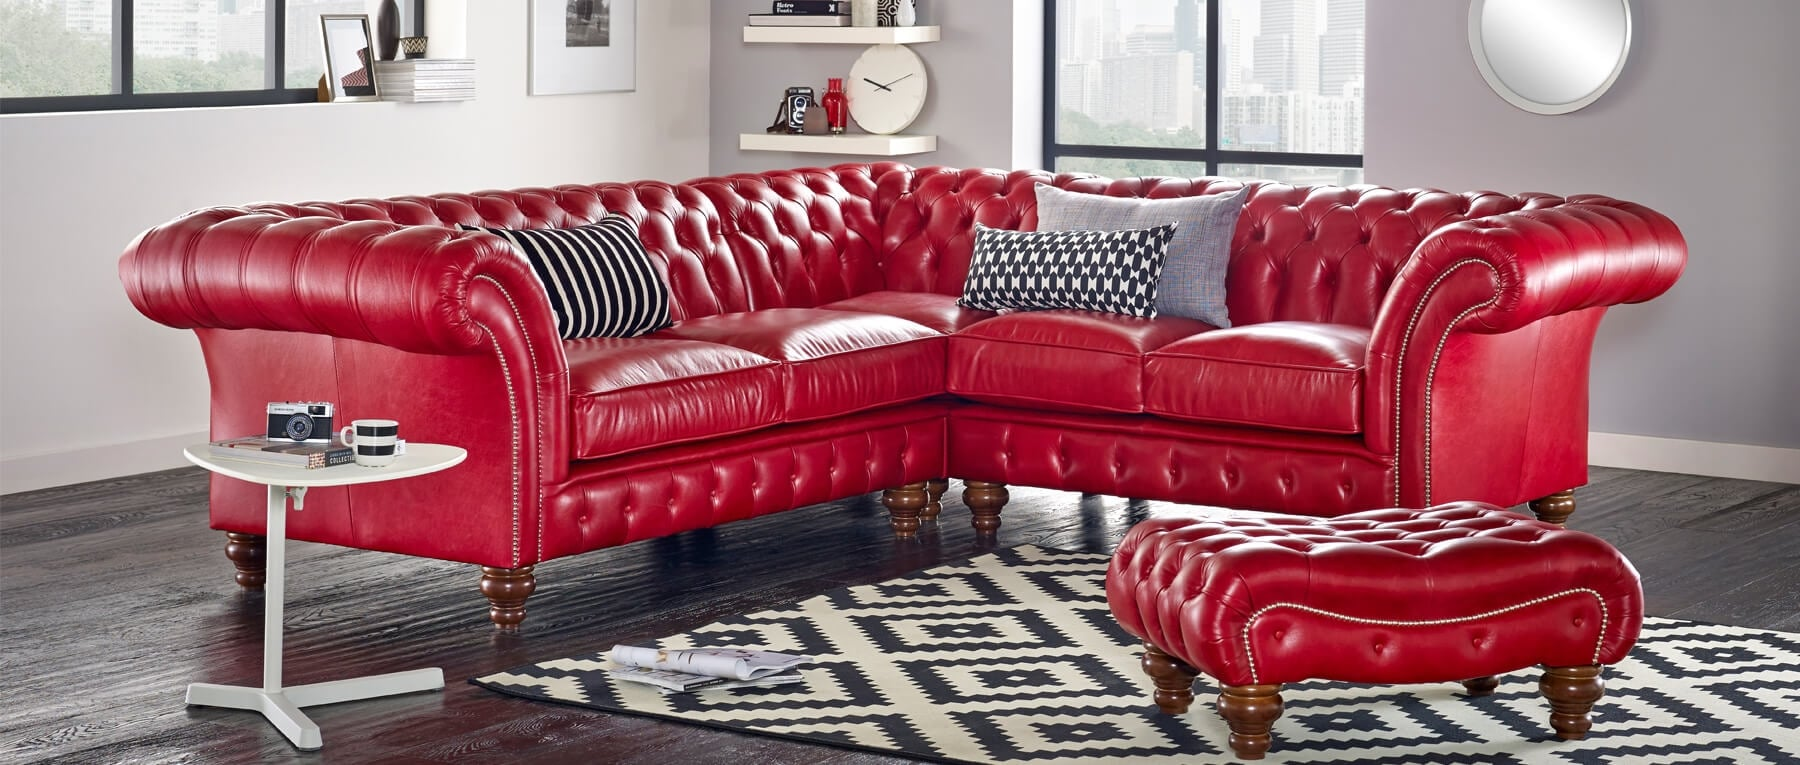 Bespoke Chesterfield Furniture Handmade in Britain